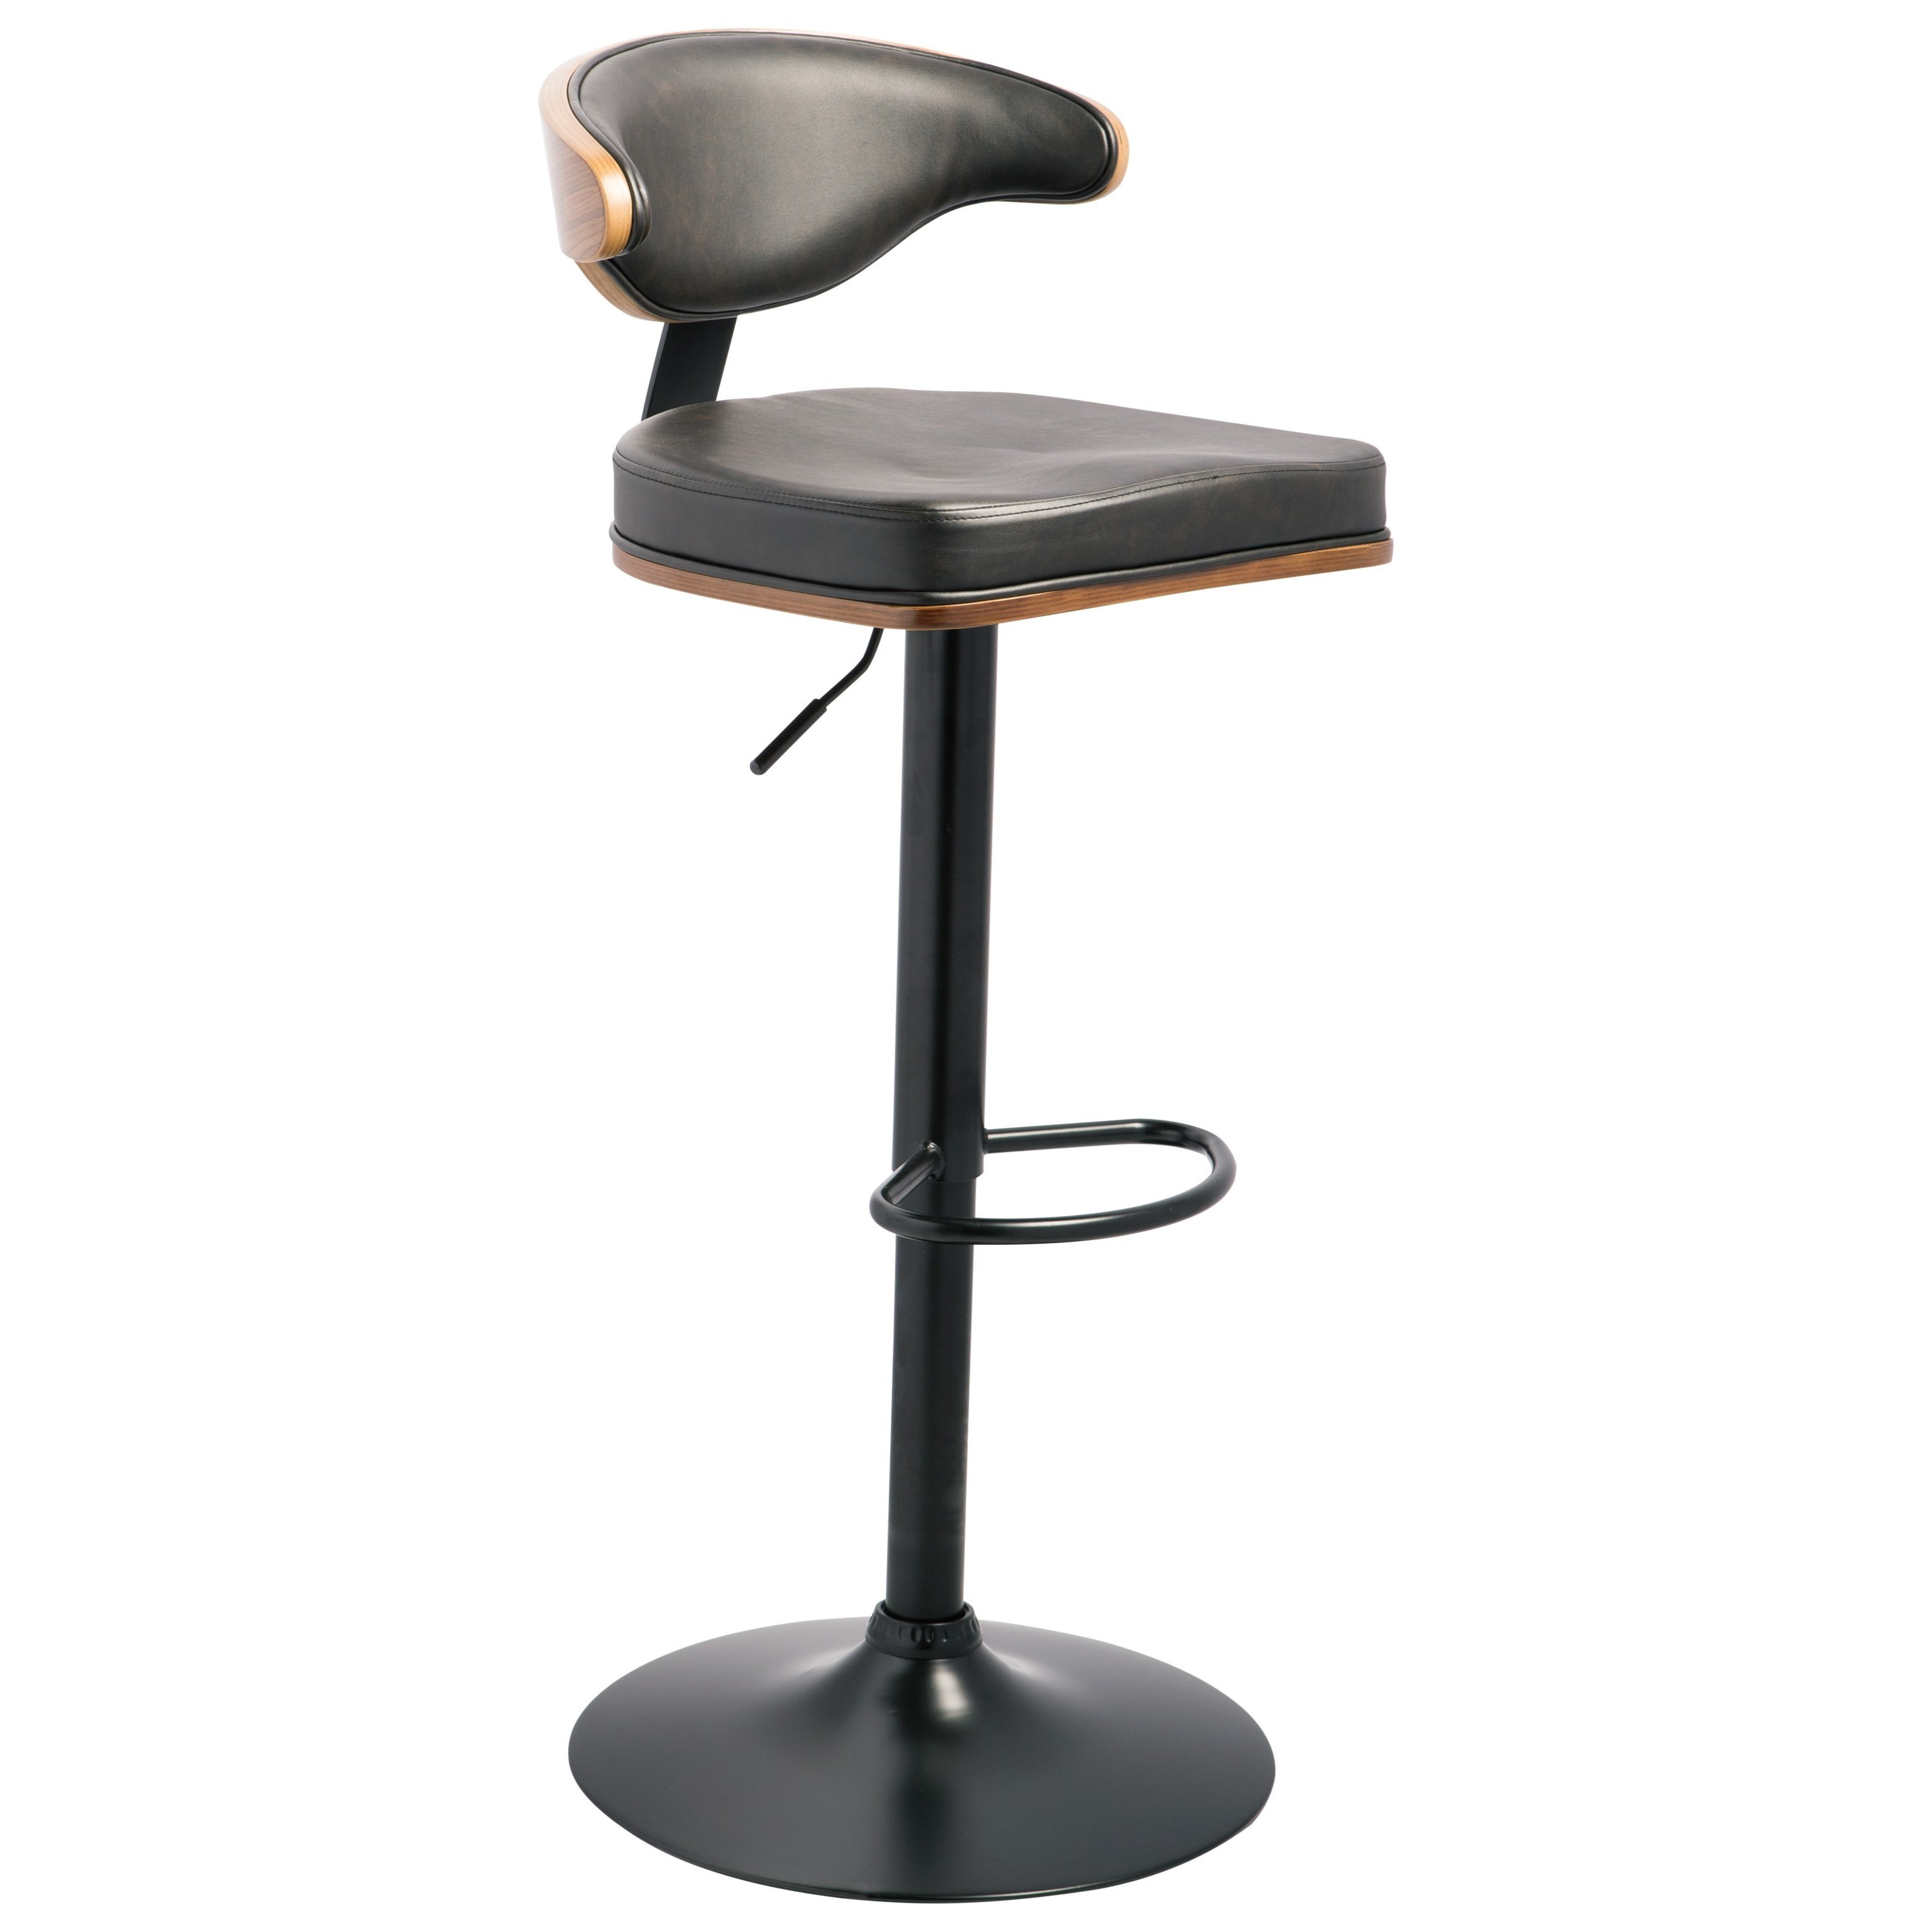 Signature Design by Ashley Adjustable Height Barstools Tall Upholstered Swivel Barstool - Item Number D120  sc 1 st  Northeast Factory Direct & Signature Design by Ashley Adjustable Height Barstools D120-330 ... islam-shia.org